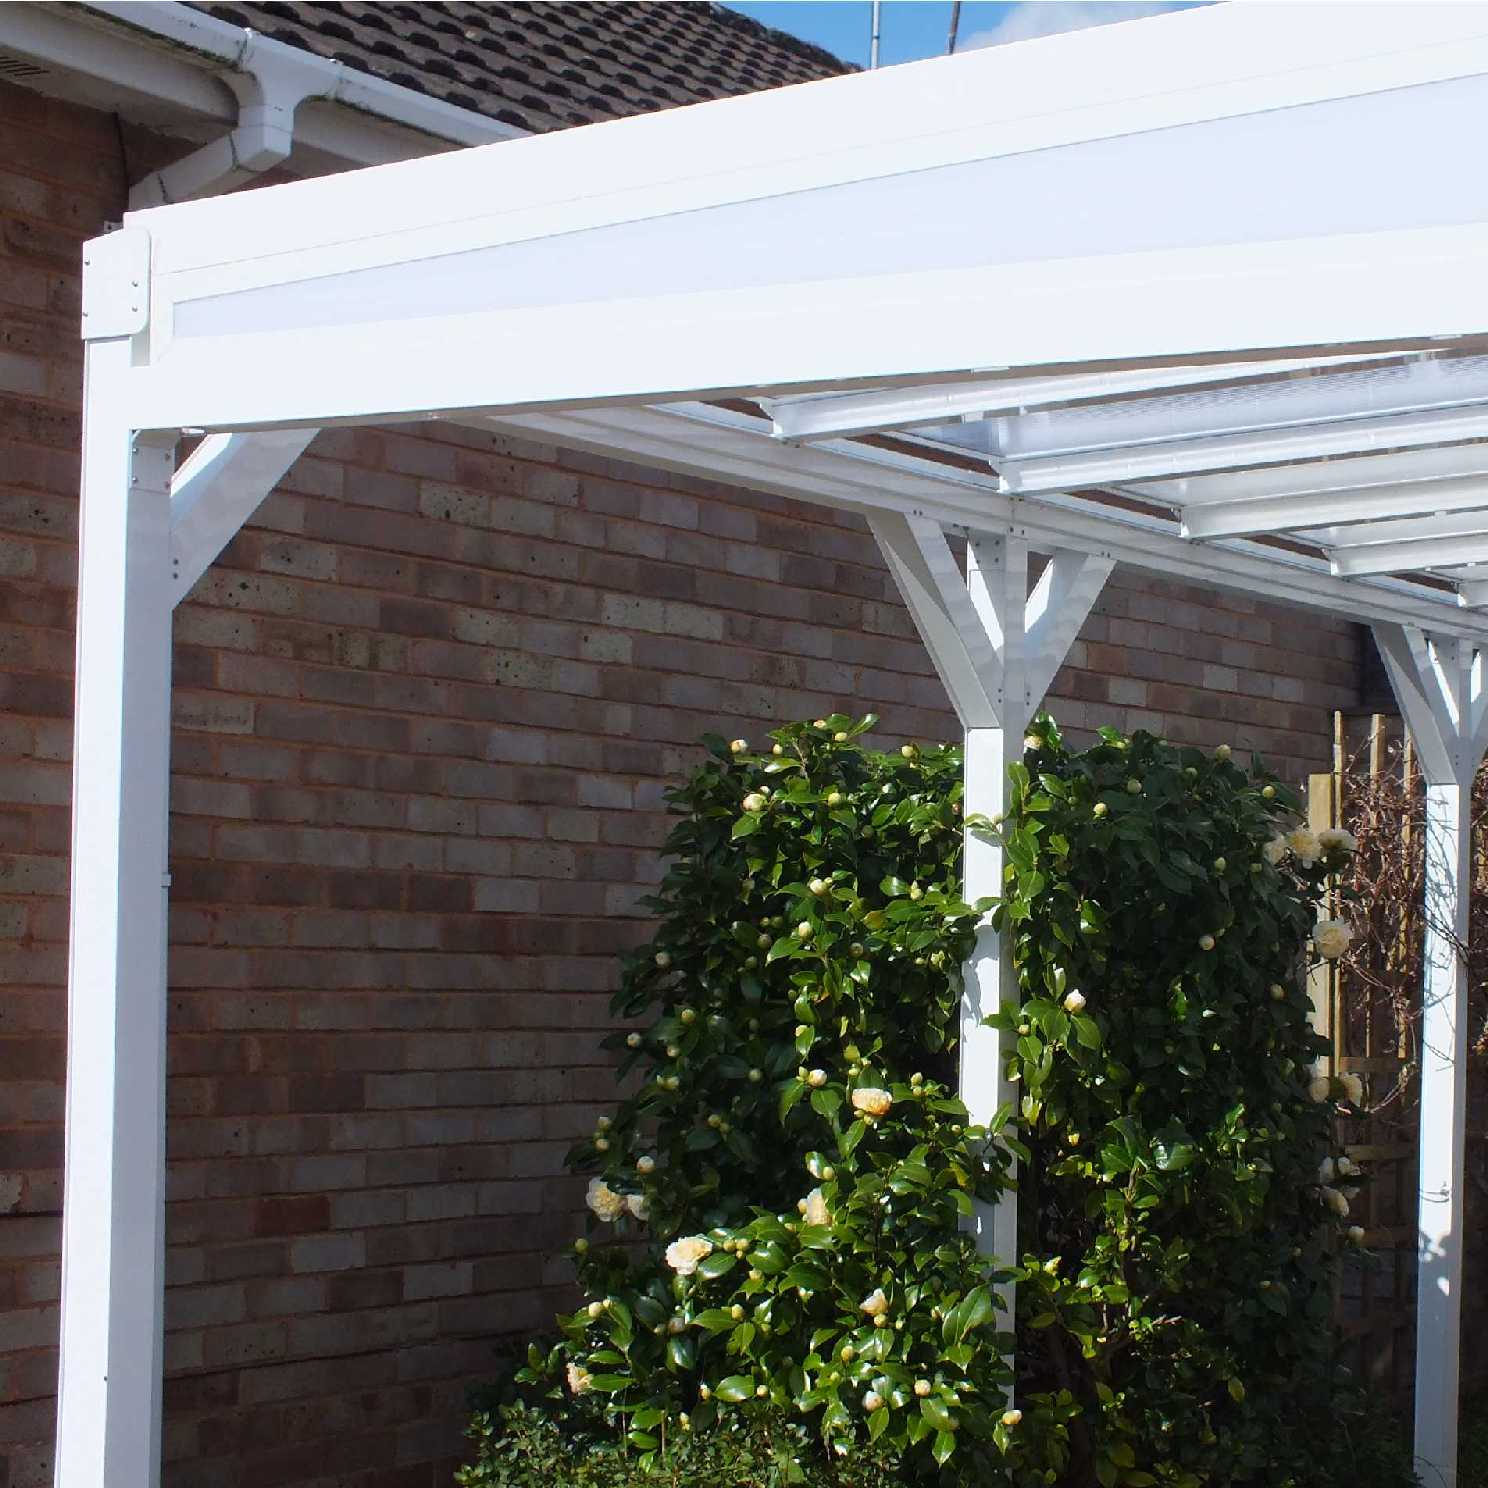 Omega Smart White Lean-To Canopy with 16mm Polycarbonate Glazing - 7.0m (W) x 4.5m (P), (4) Supporting Posts from Omega Build